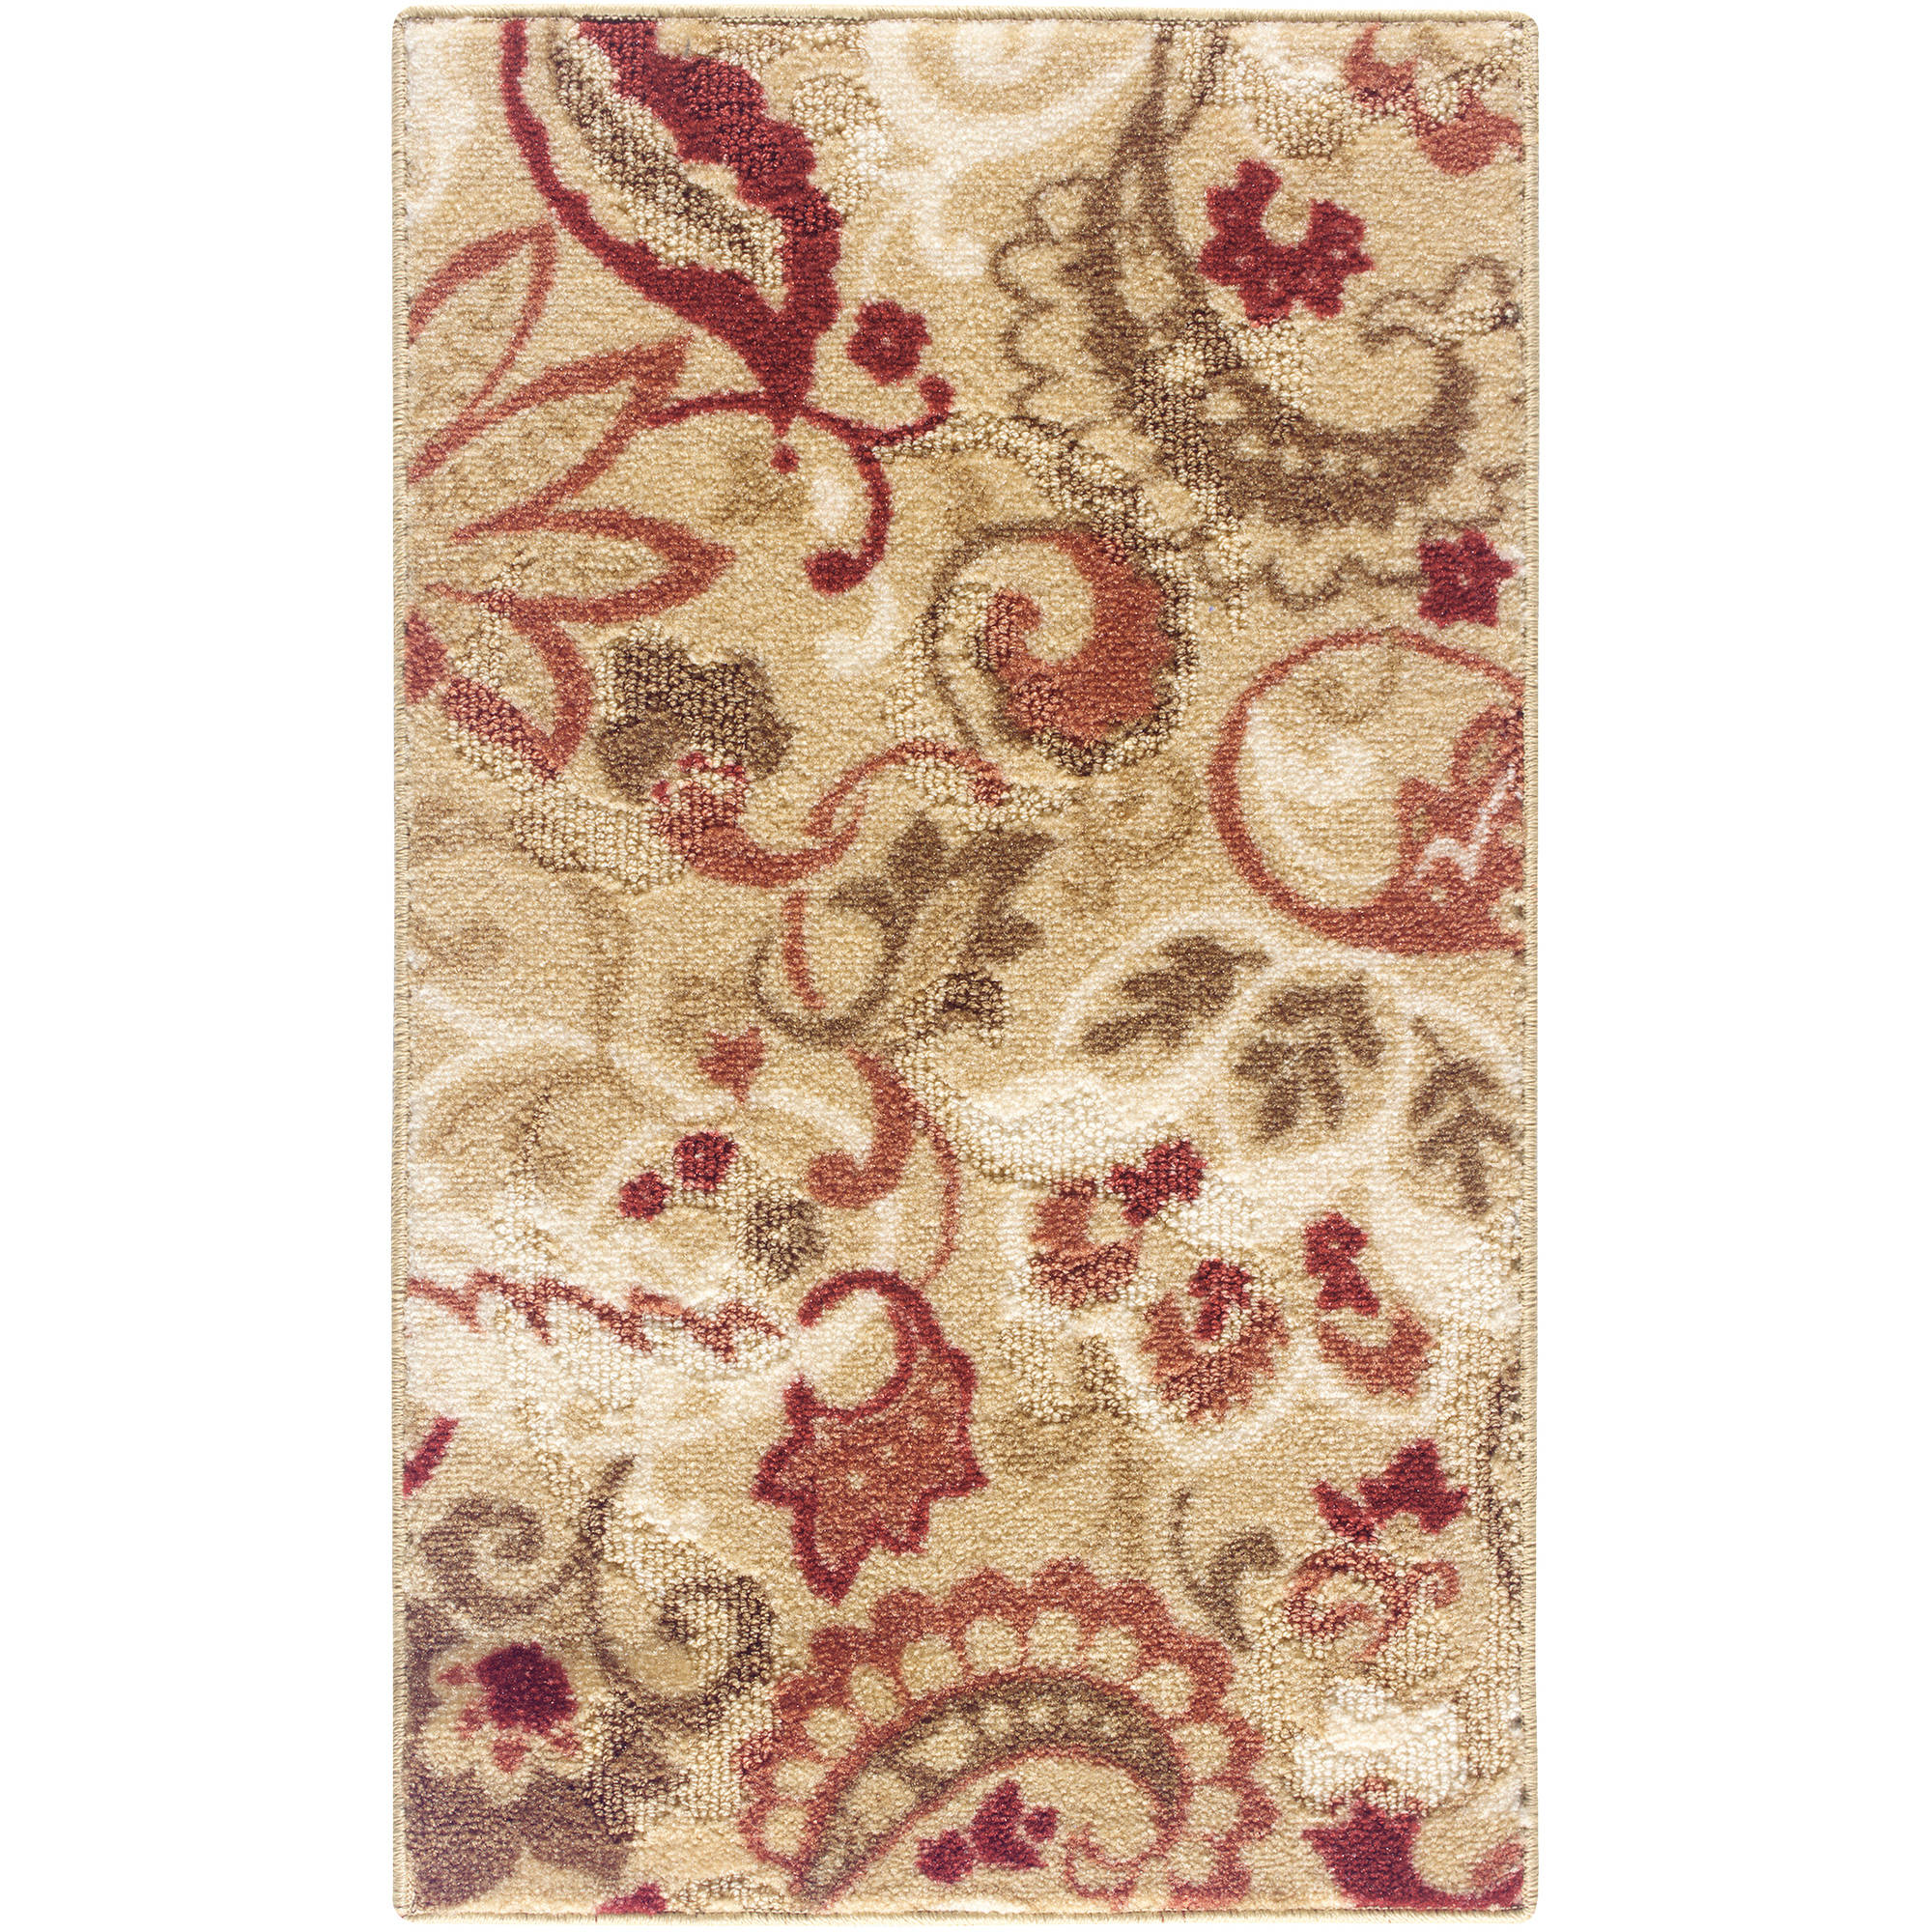 Better Homes and Gardens Paisley Print Area Rugs or Runner